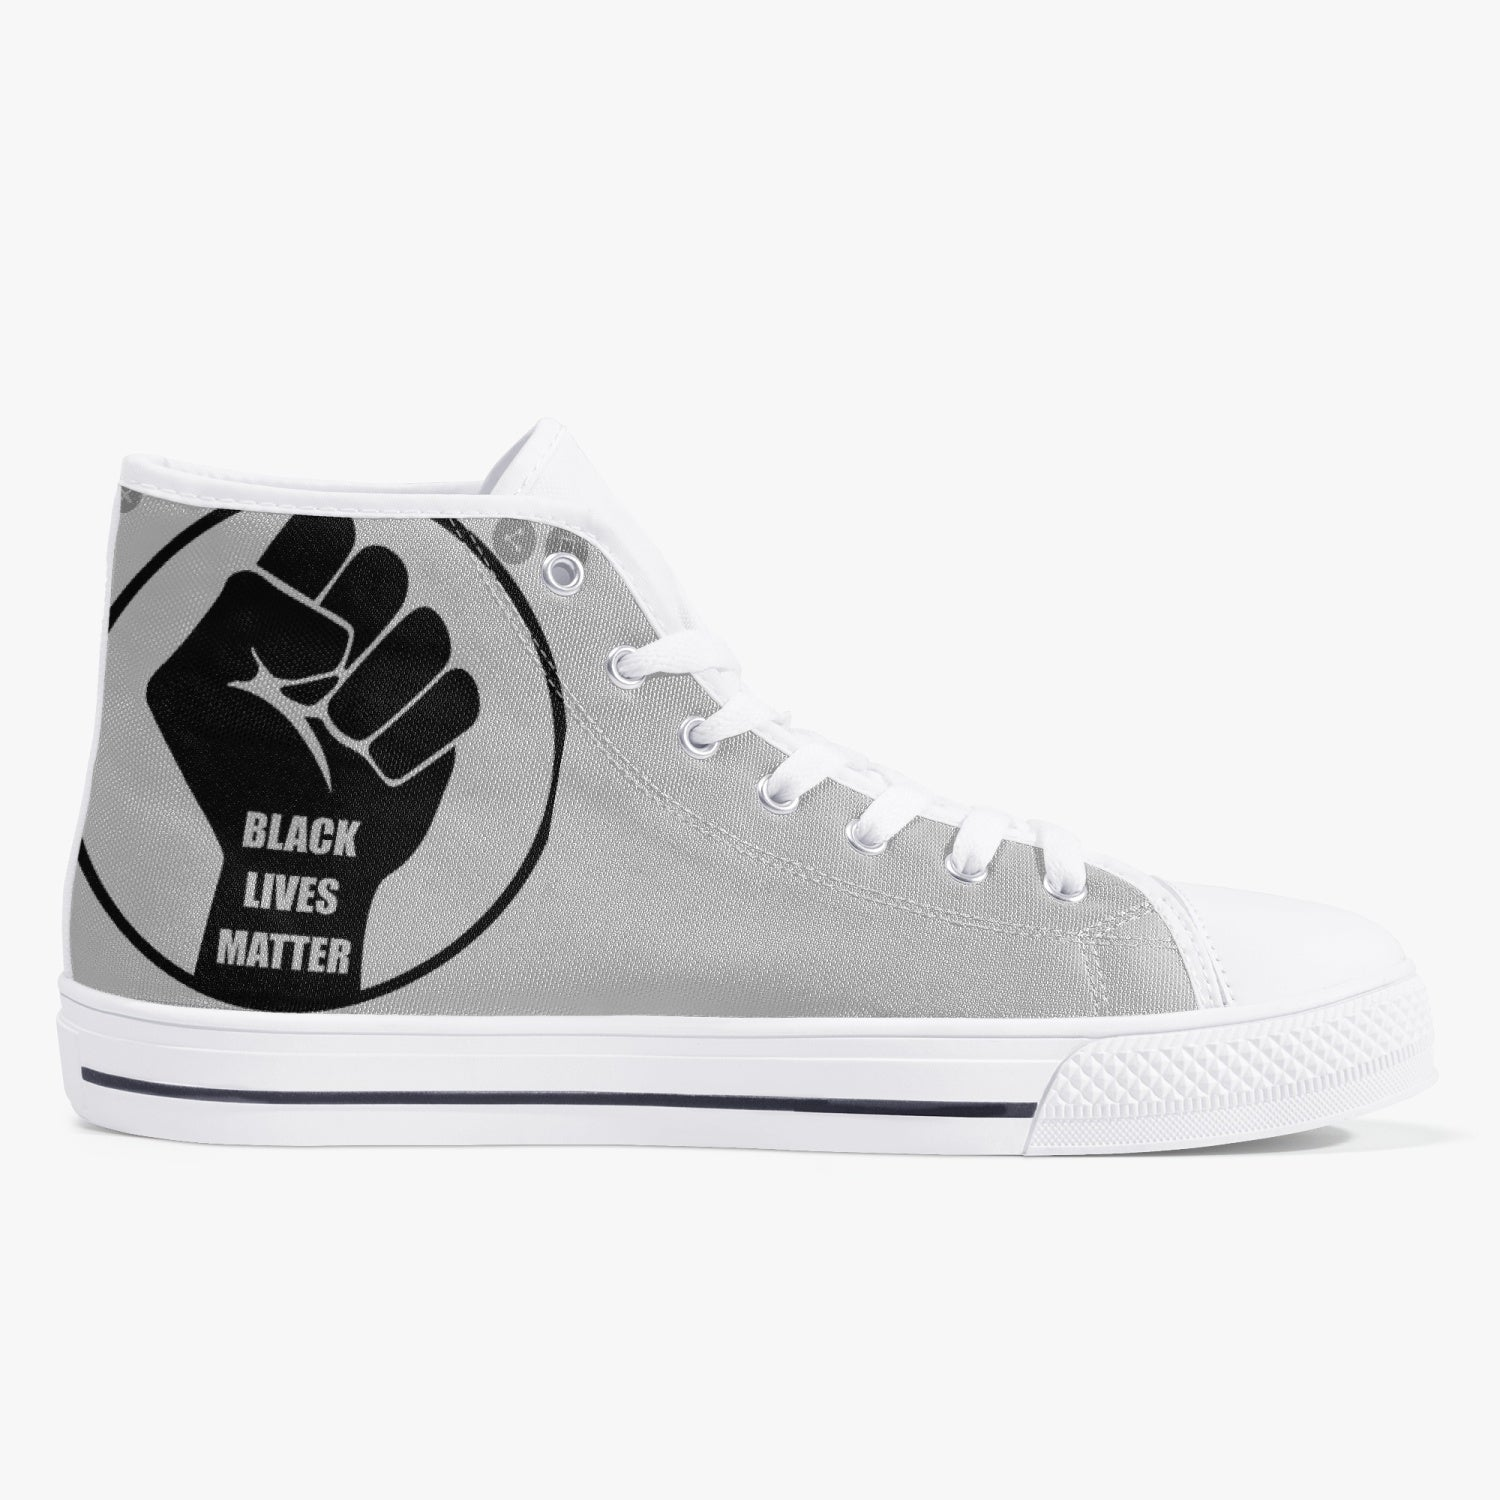 179. Classic High-Top Canvas Shoes - White/Black - Black Lives Clothing